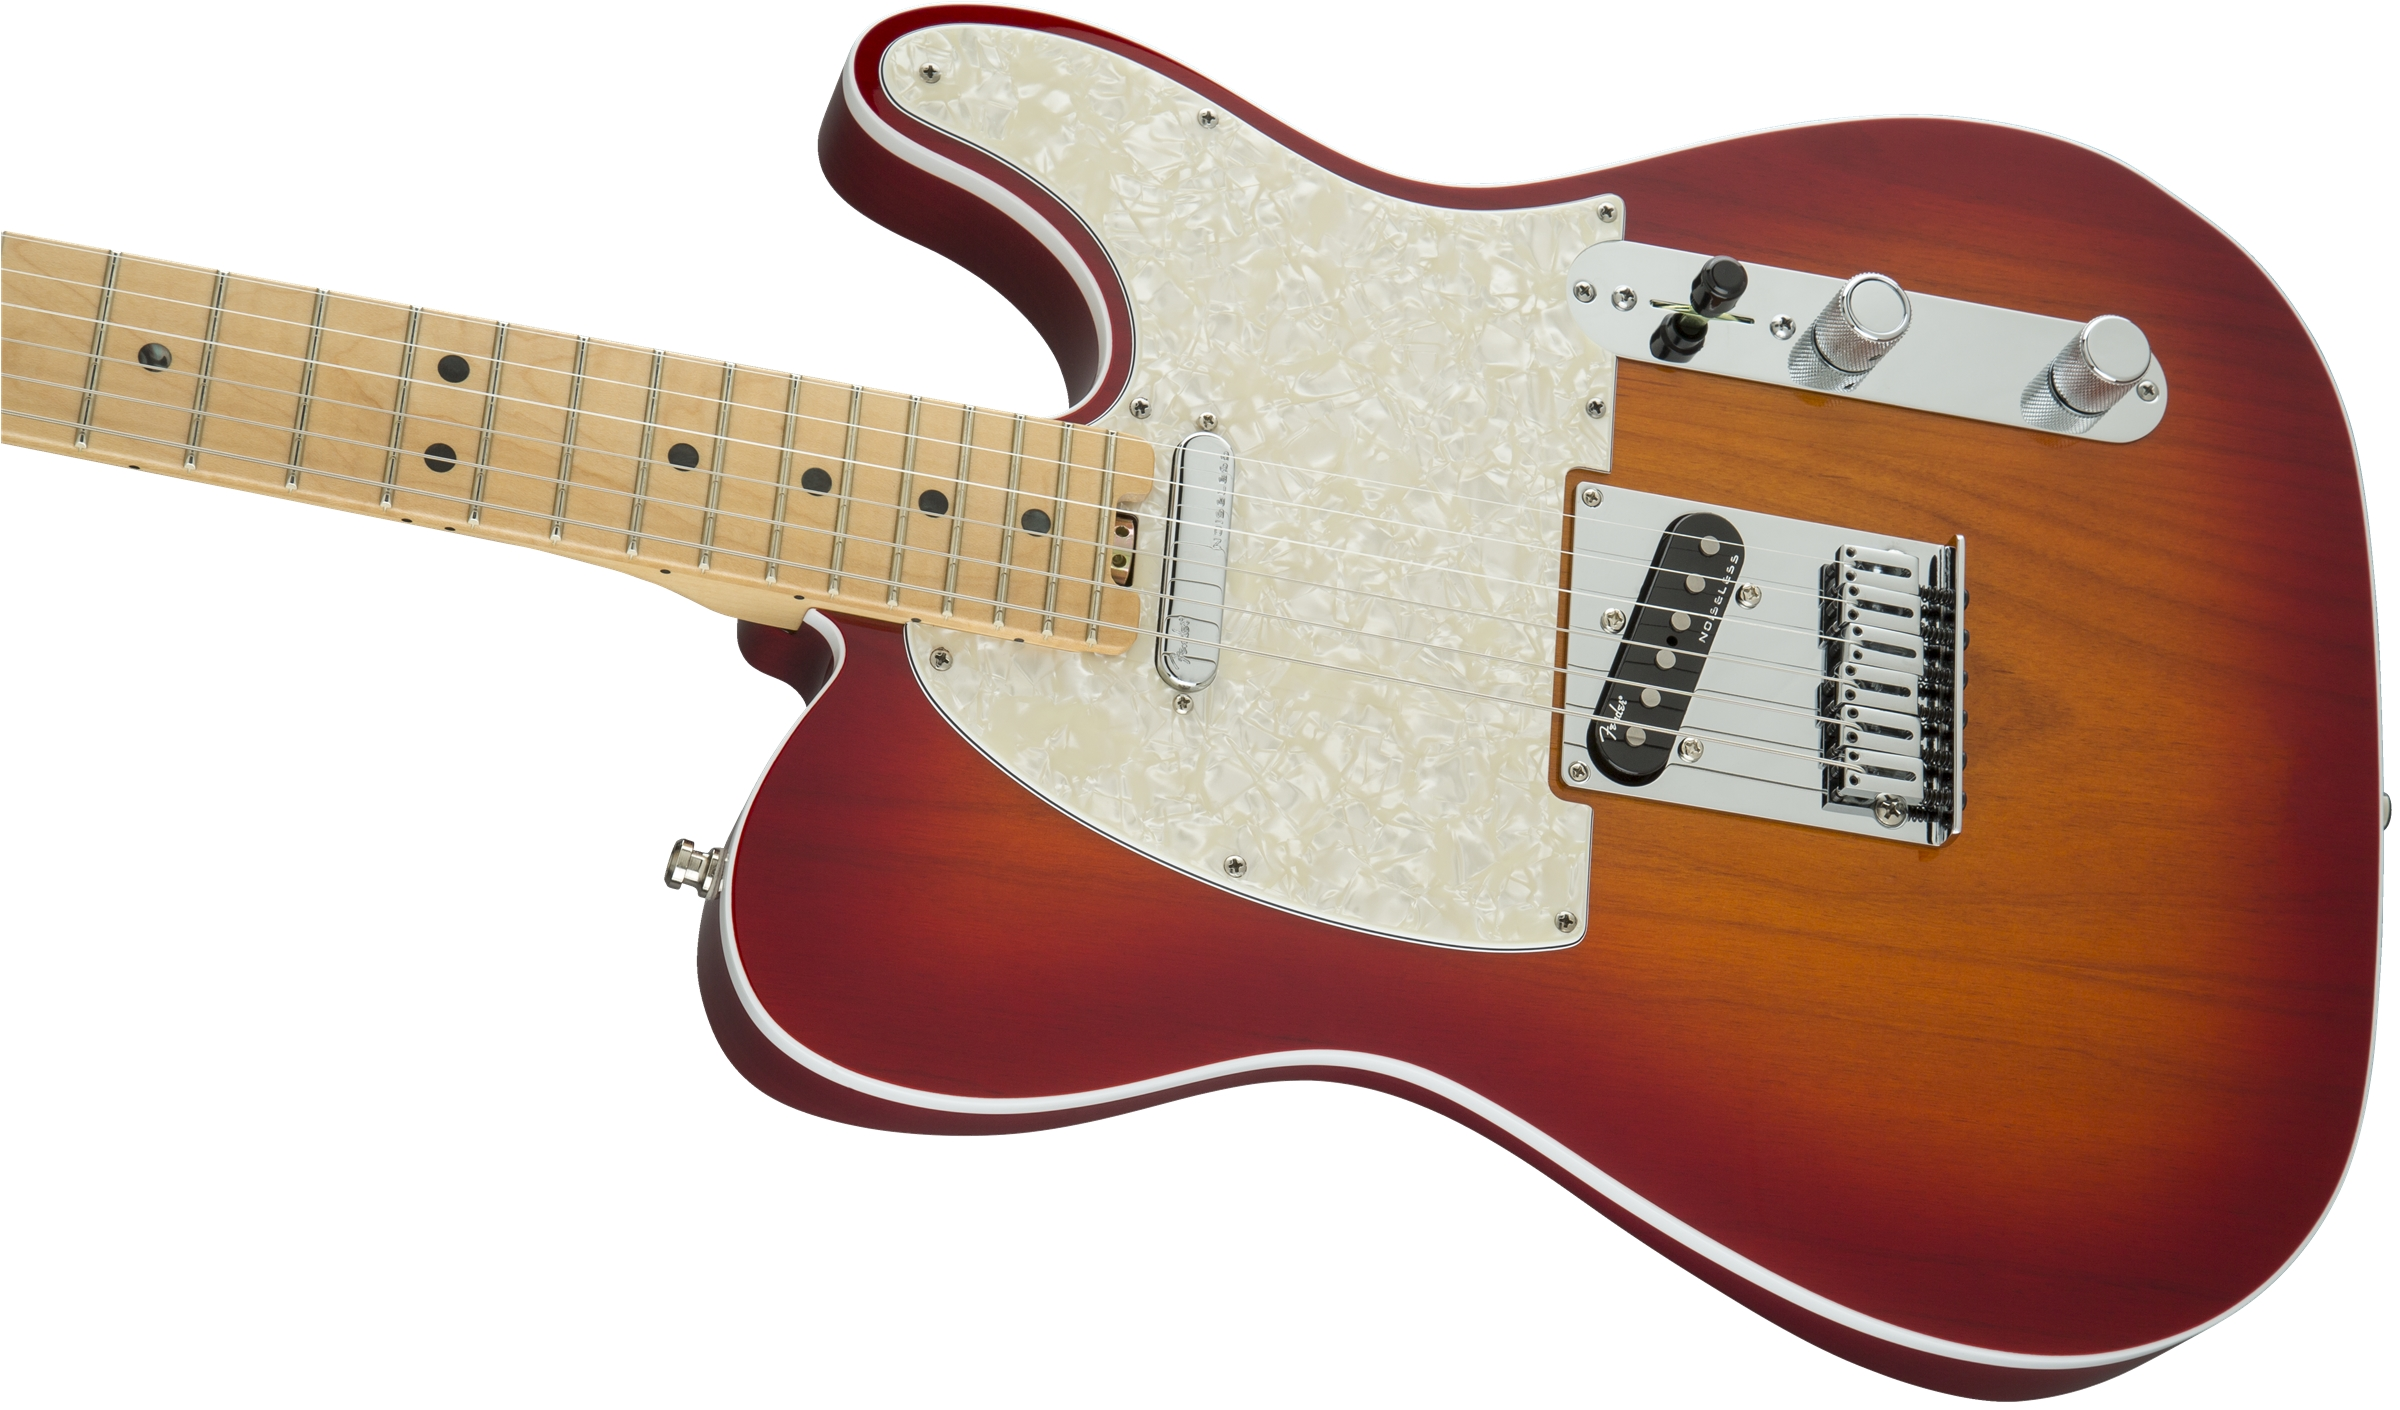 Fender American Elite Telecaster® Aged Cherry Sunburst Maple Fingerboard Electric Guitar